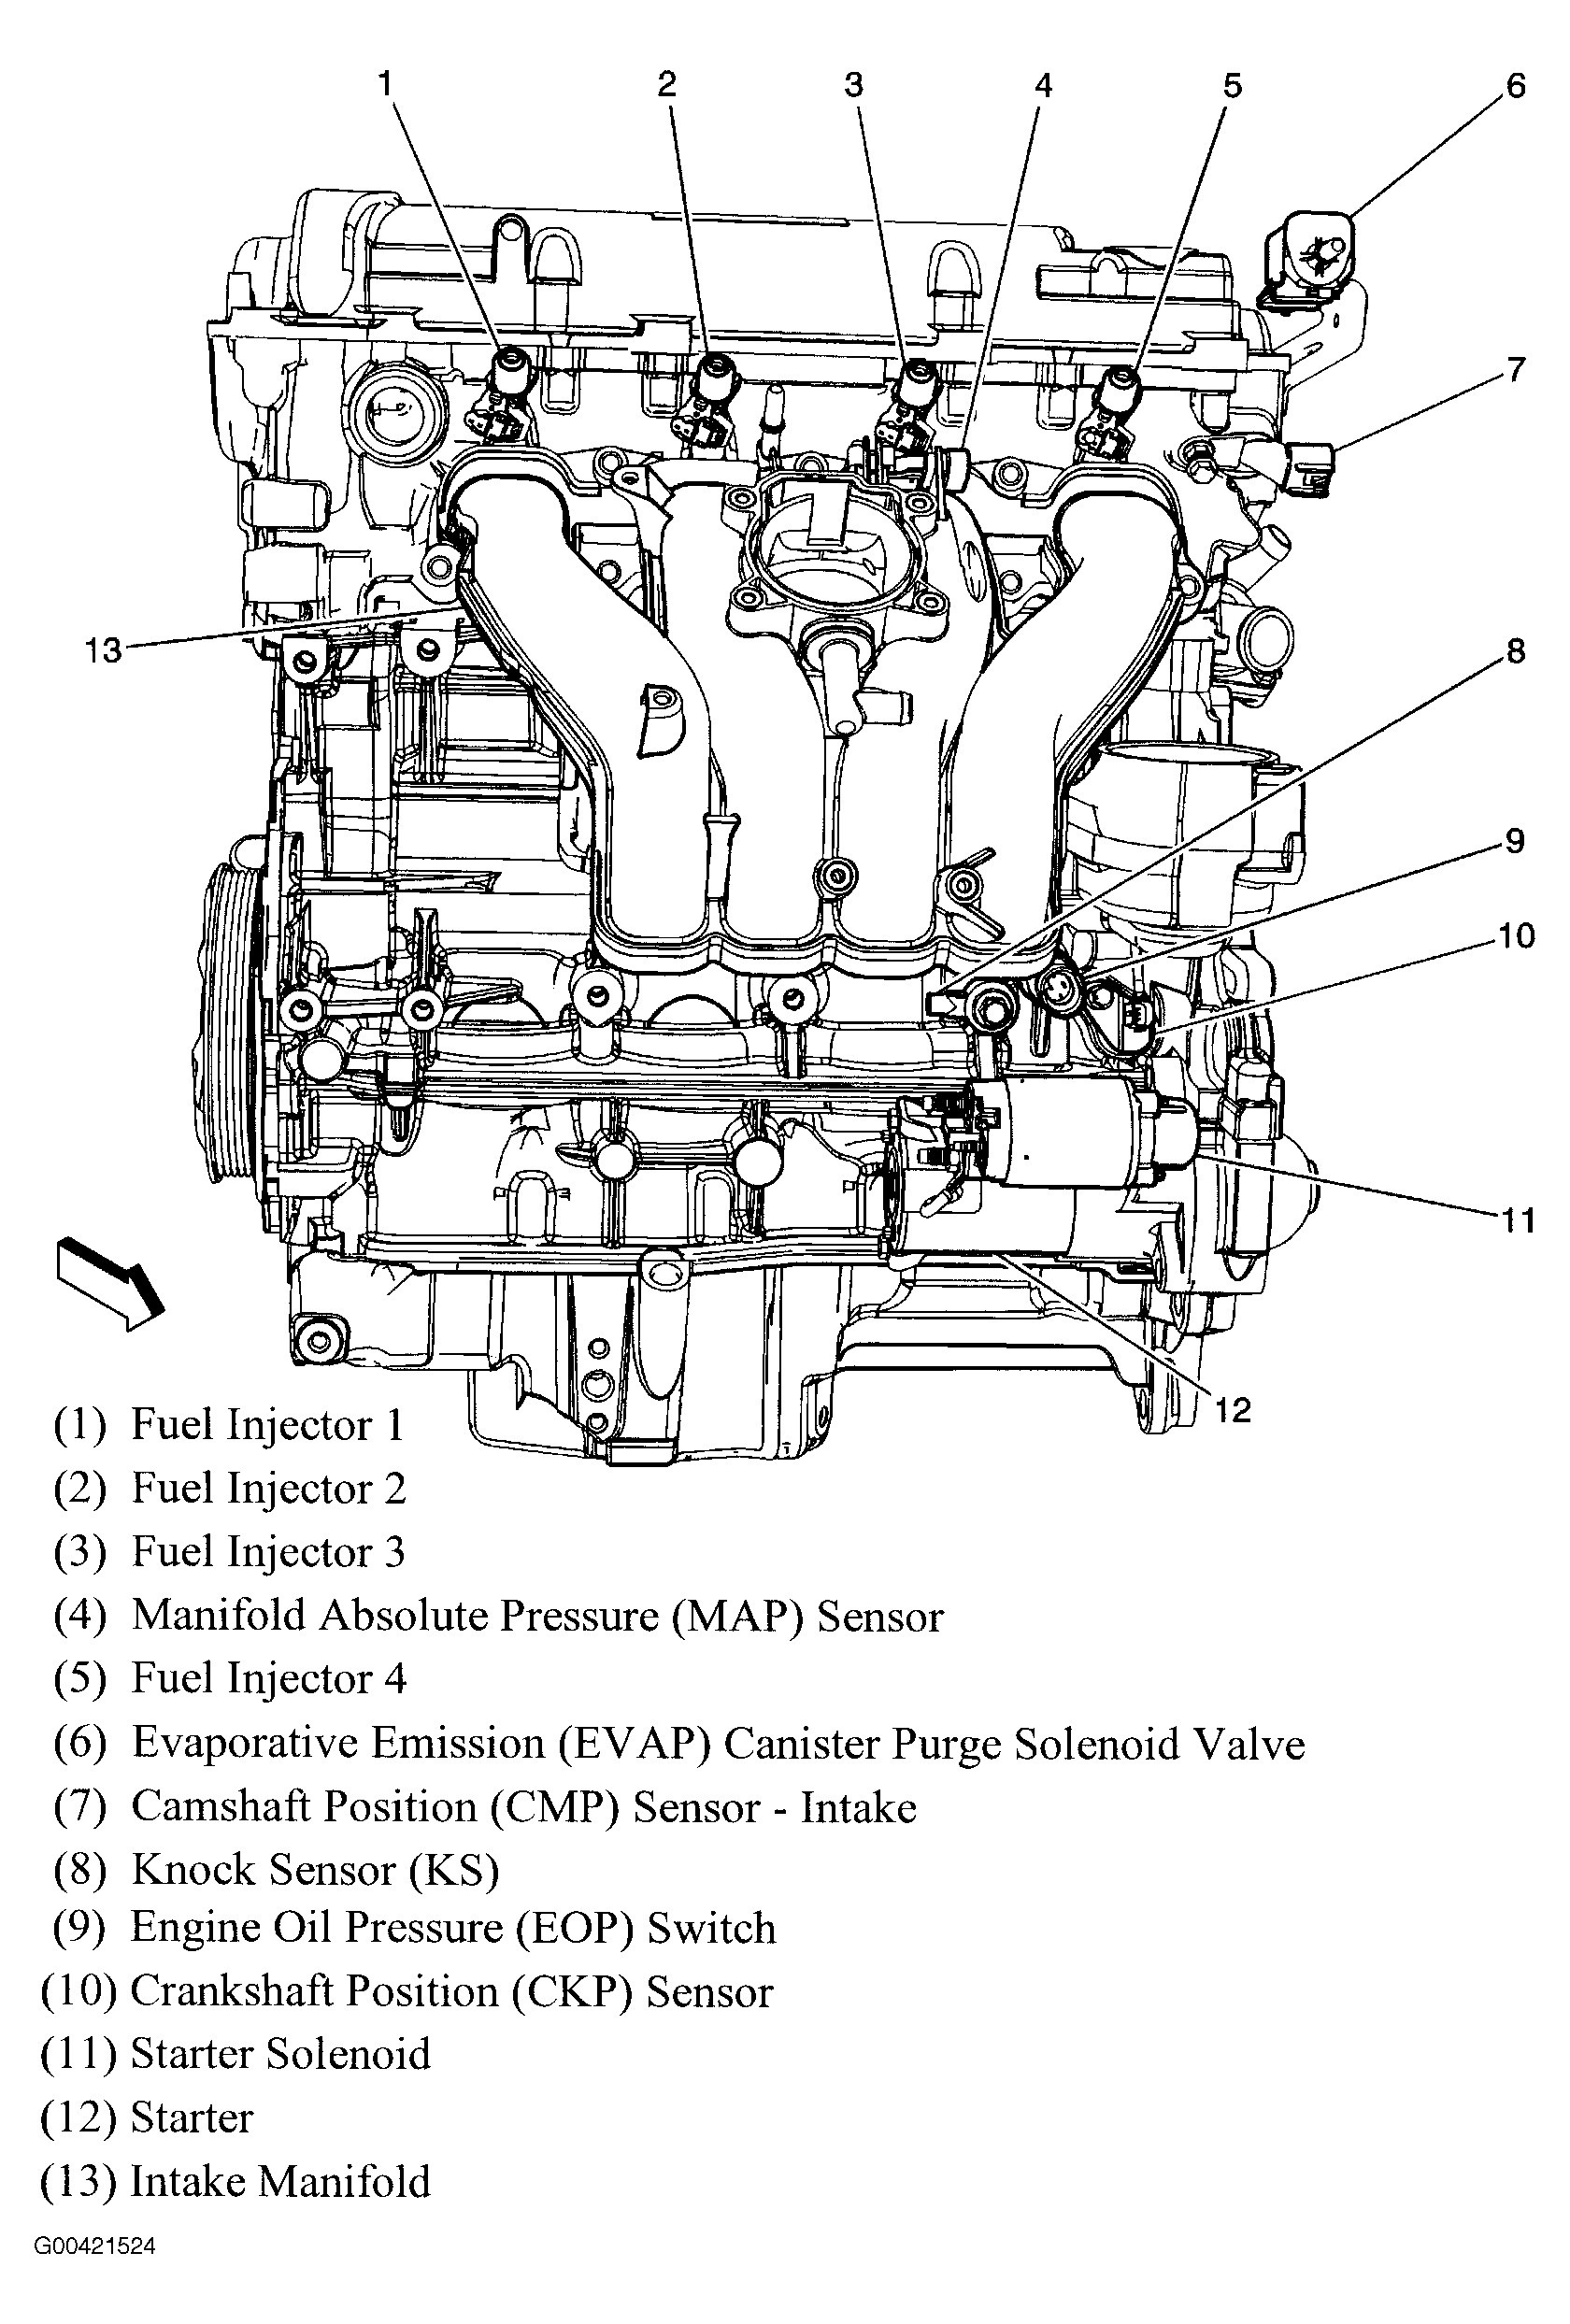 hight resolution of gm ecotec engine diagram wiring diagram pos 2006 gm 6 0 engine diagram